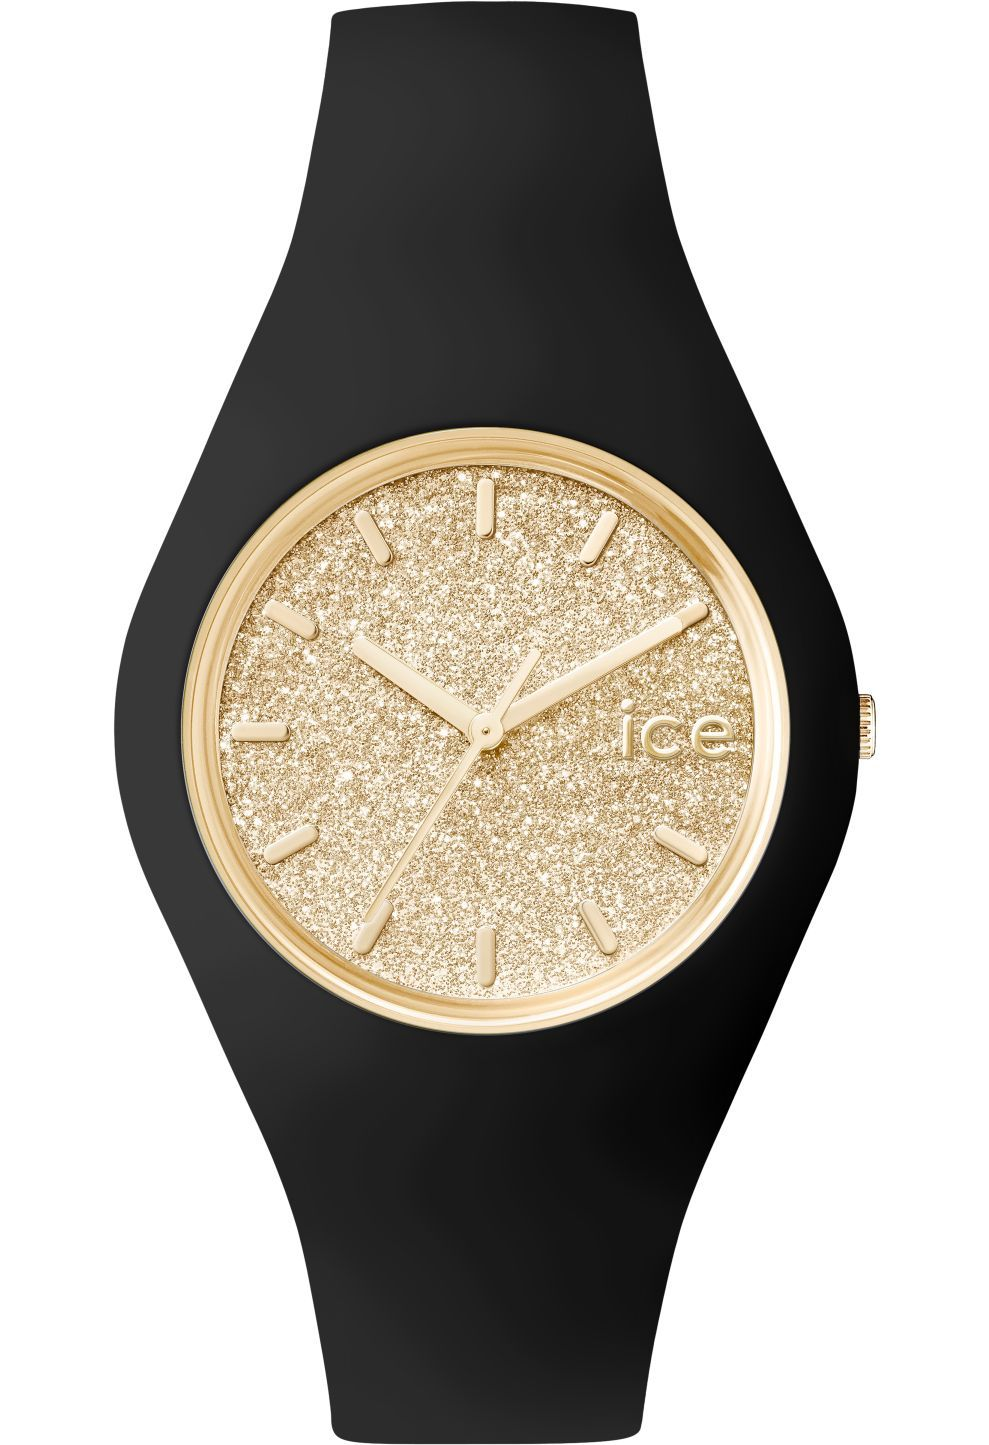 Montre ICE-Glitter - Black Gold - Unisex   Watch obsession   Ice ... 9bea30bc5370